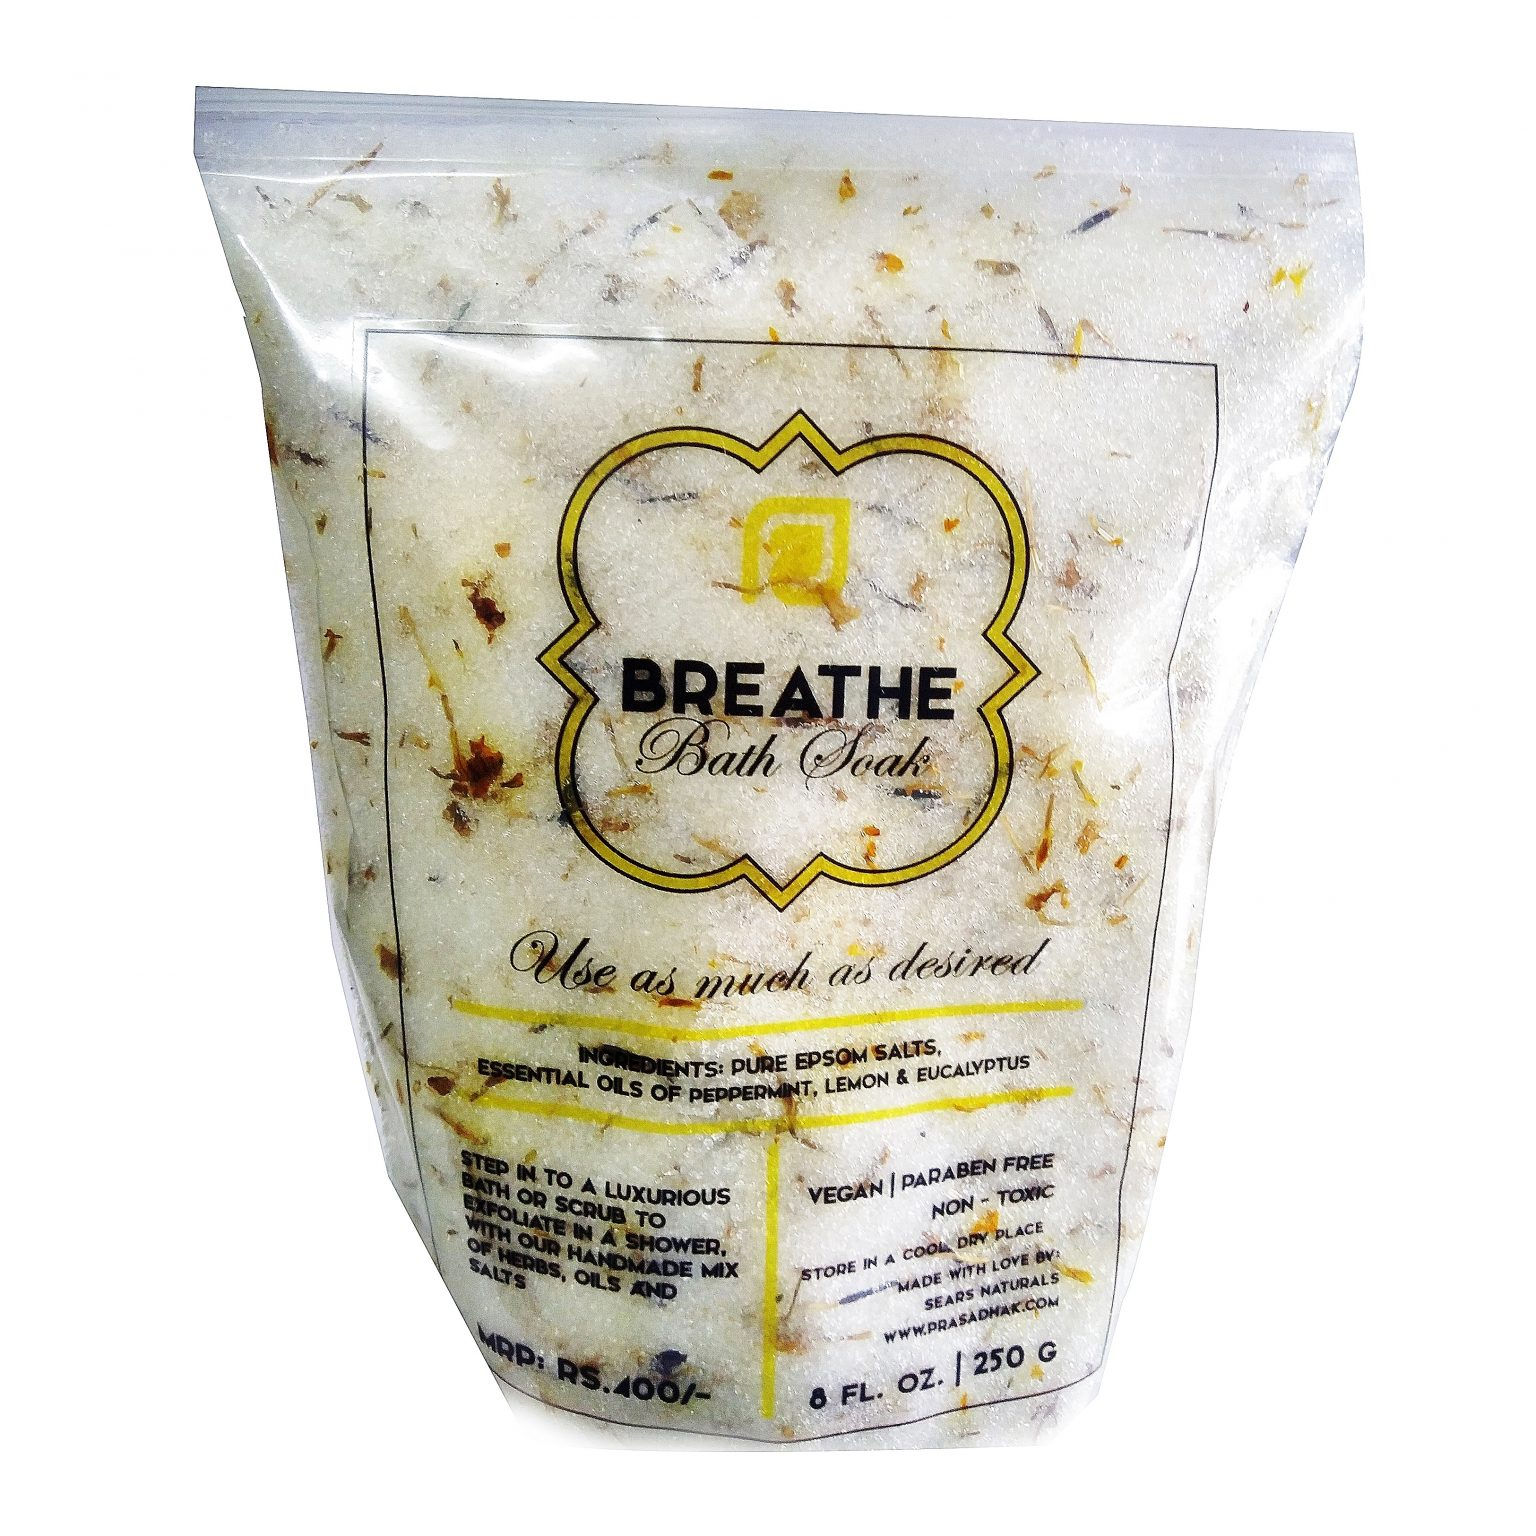 Breathe Bath Salts with Herbs